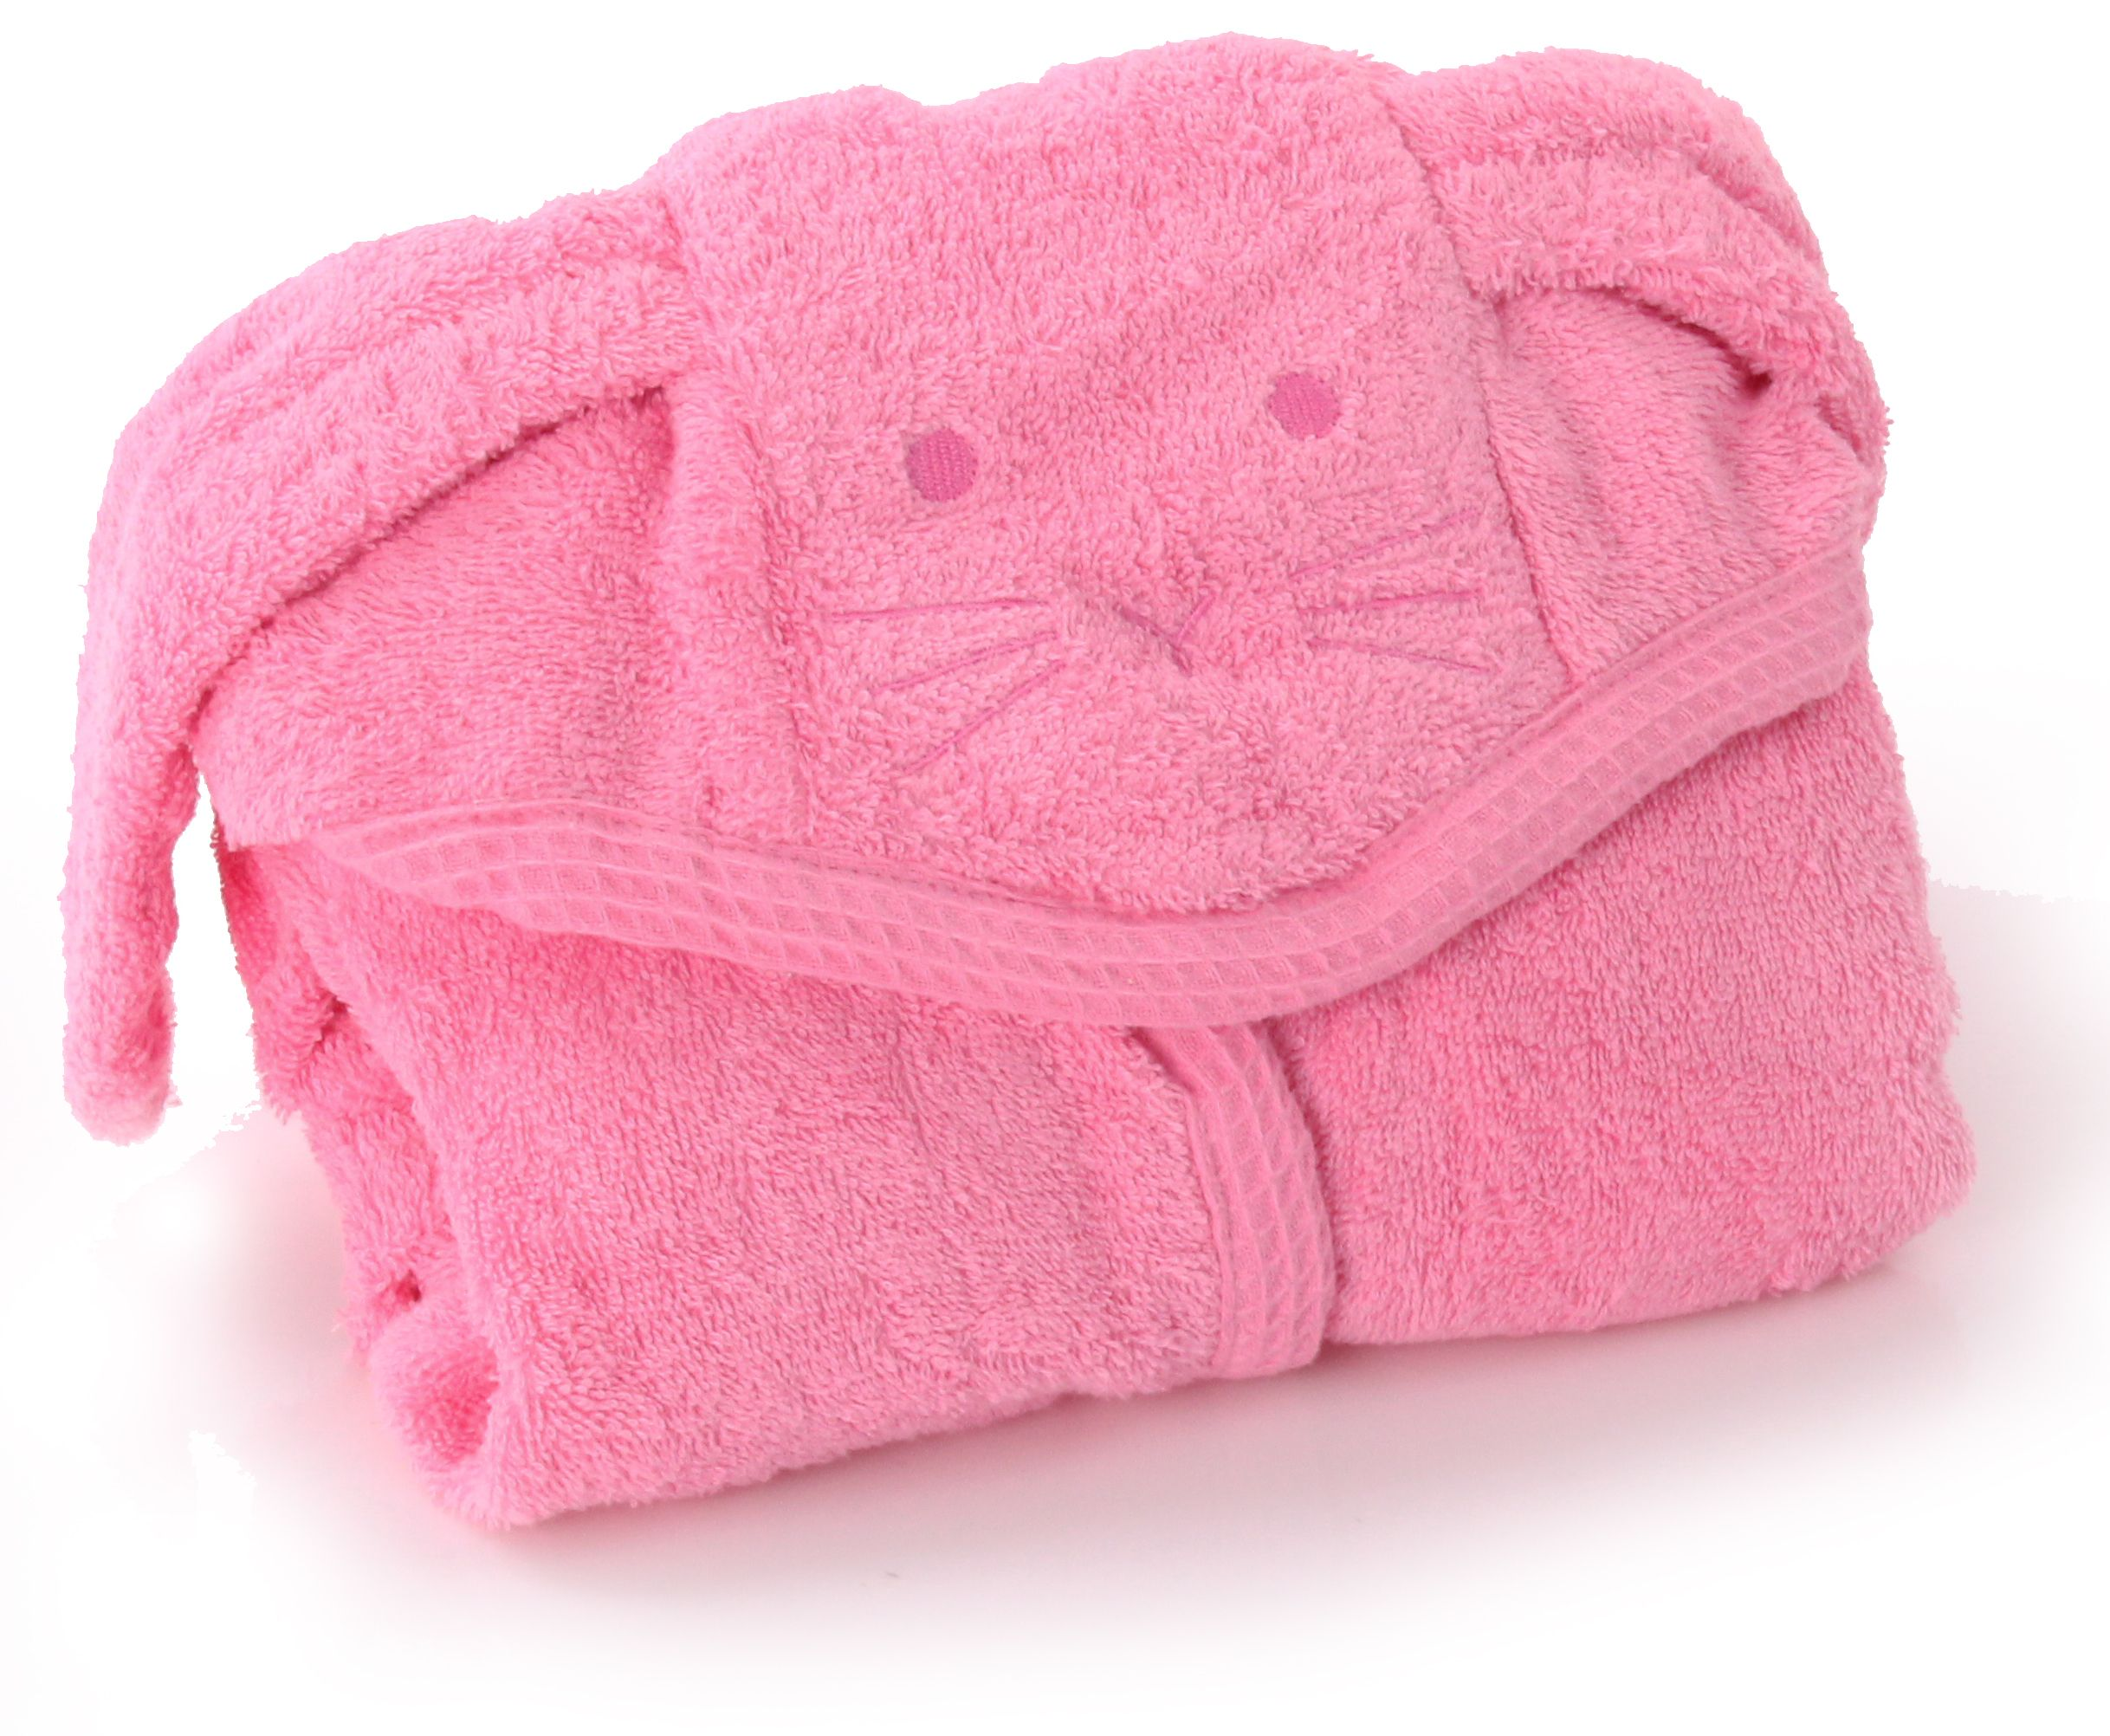 Hooded cuddly towel